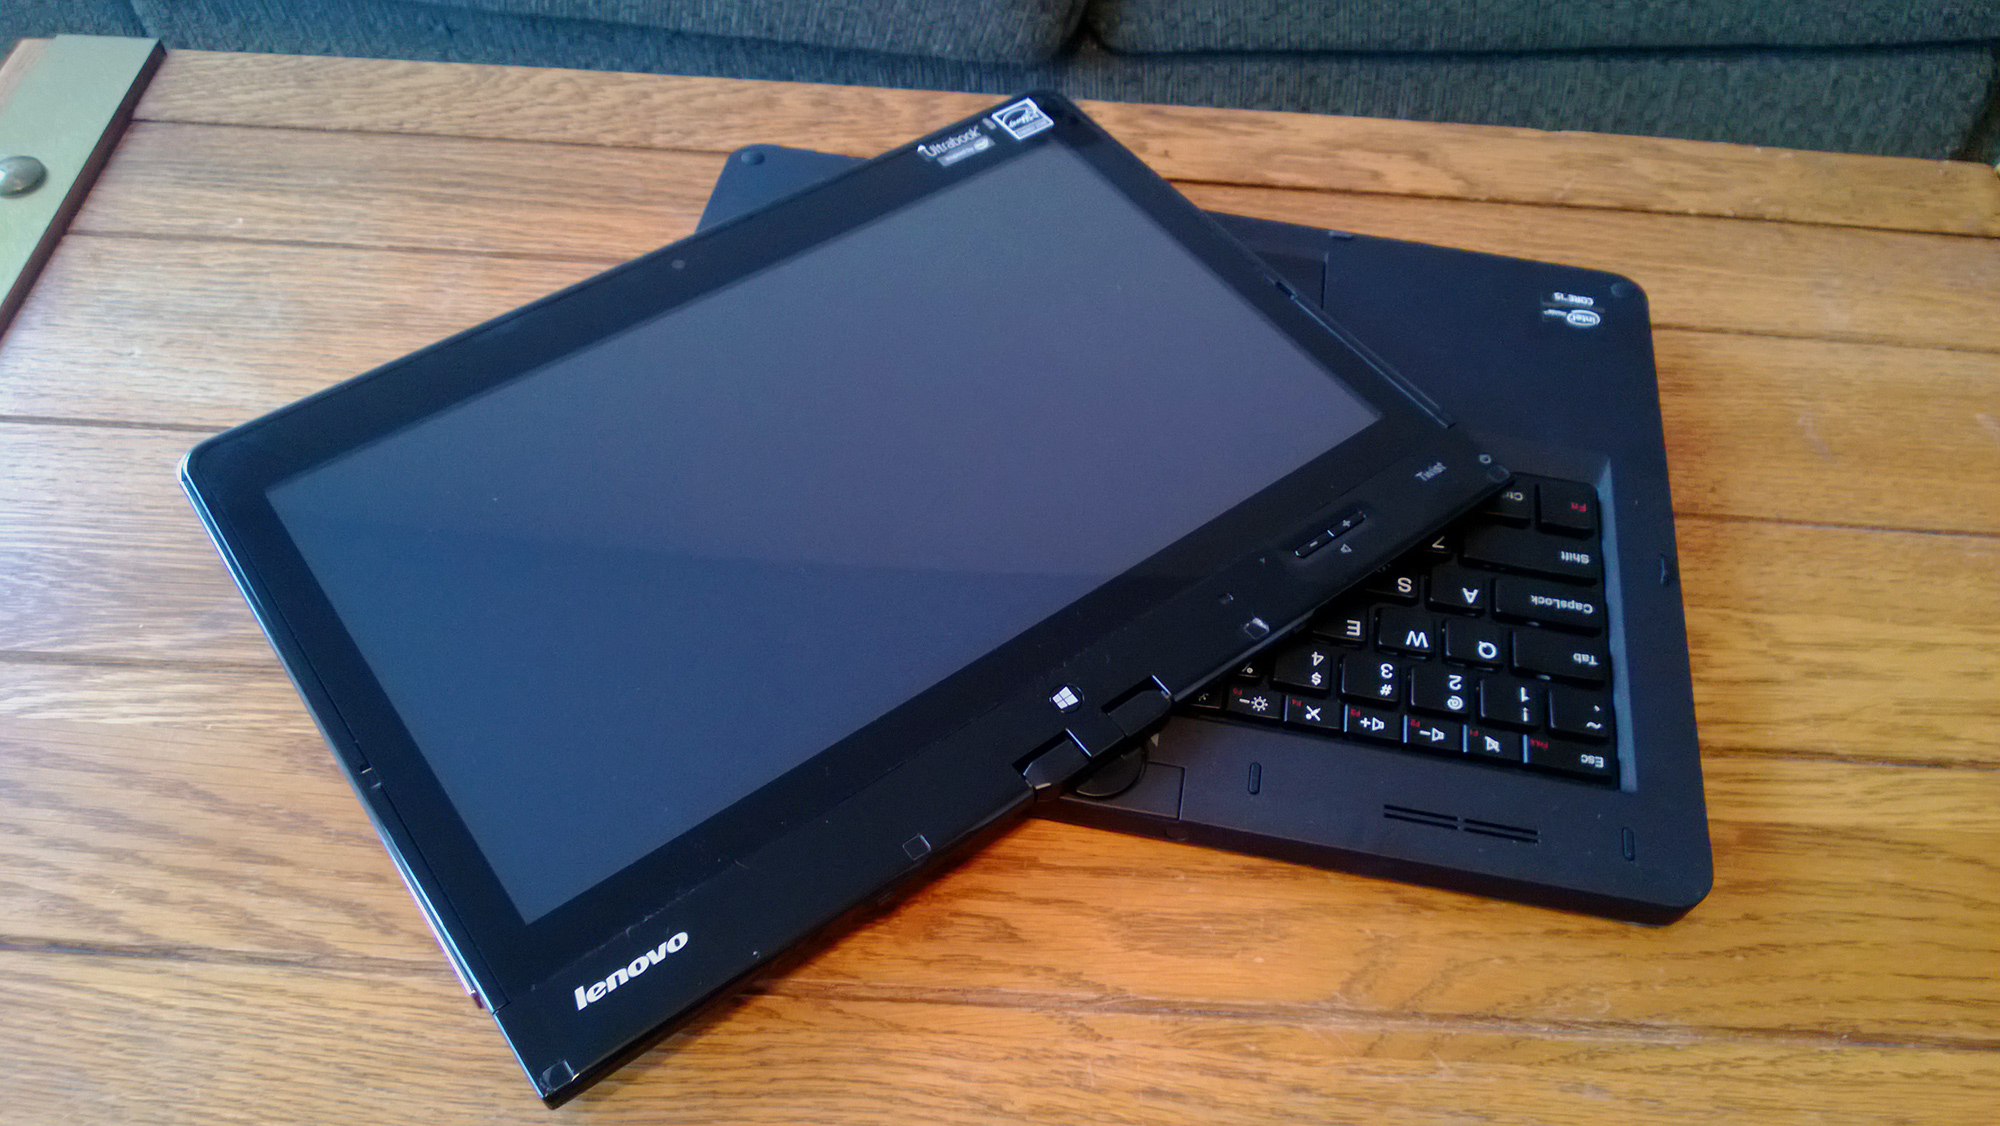 Lenovo Thinkpad Twist S230u Review - The Classic PC Tablet Gets Modern Day  Parts  e0ad85ab5c